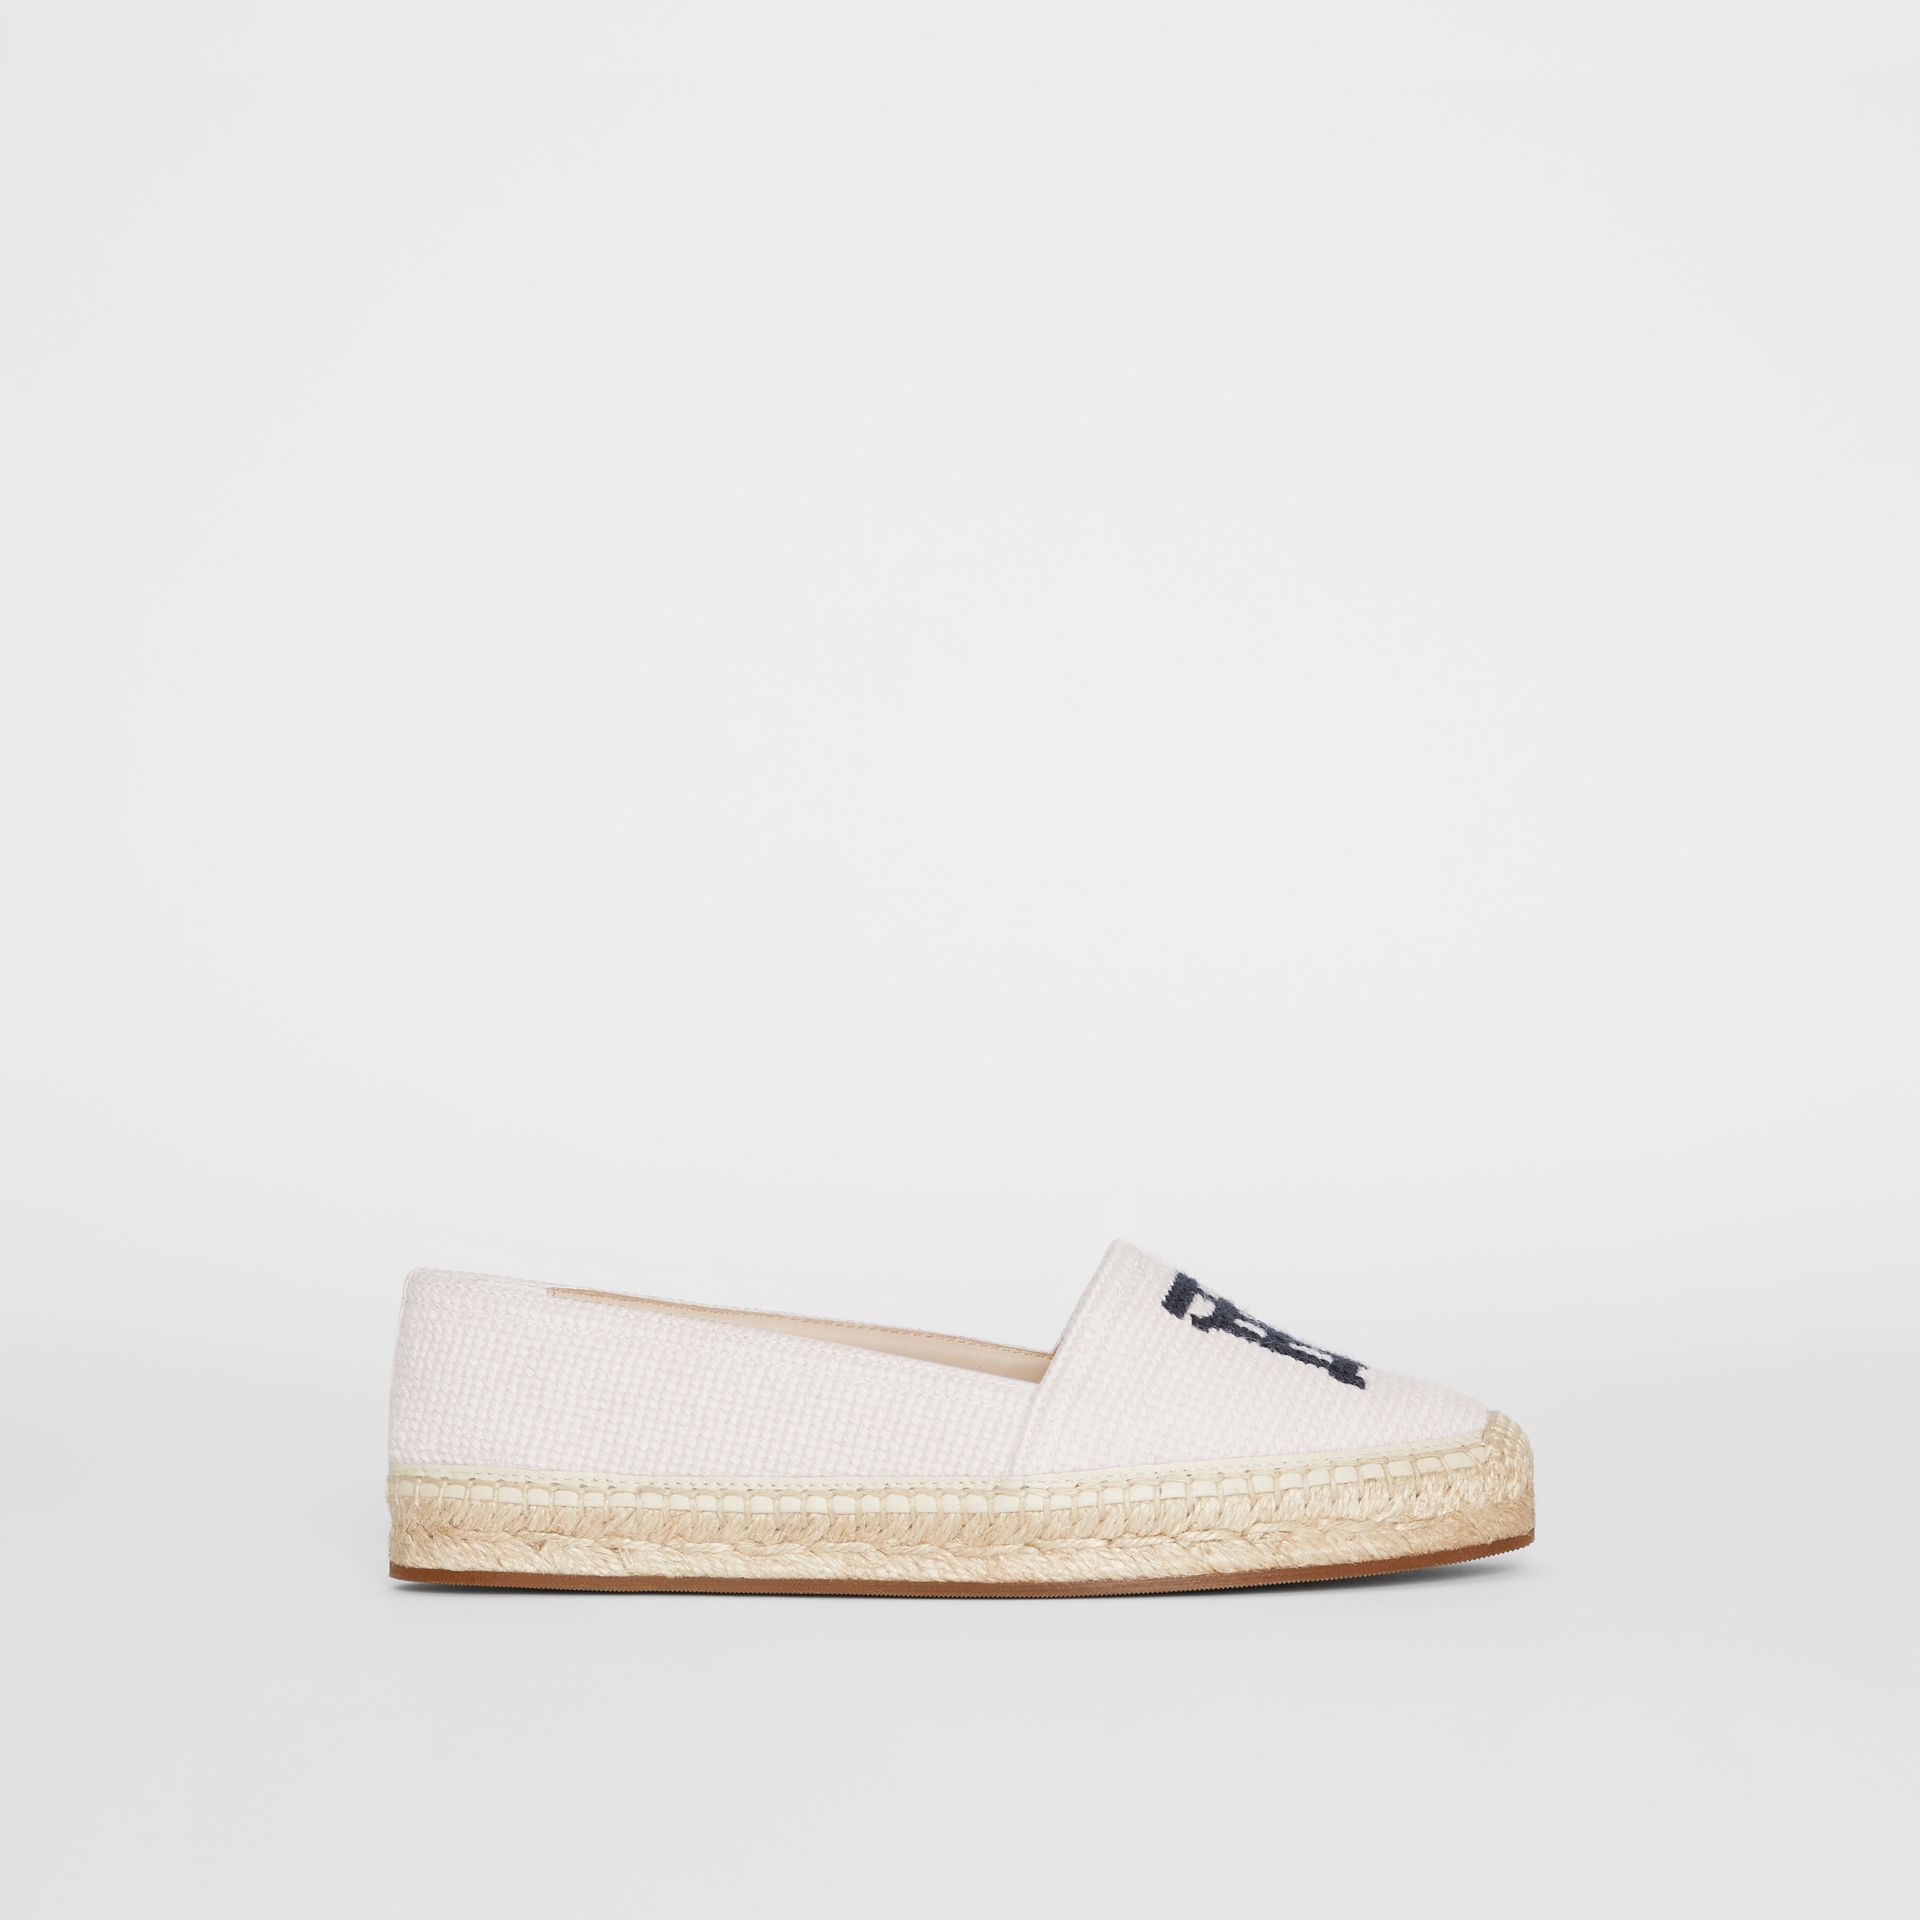 Monogram Motif Cotton and Leather Espadrilles in Ecru/black | Burberry United Kingdom - gallery image 4